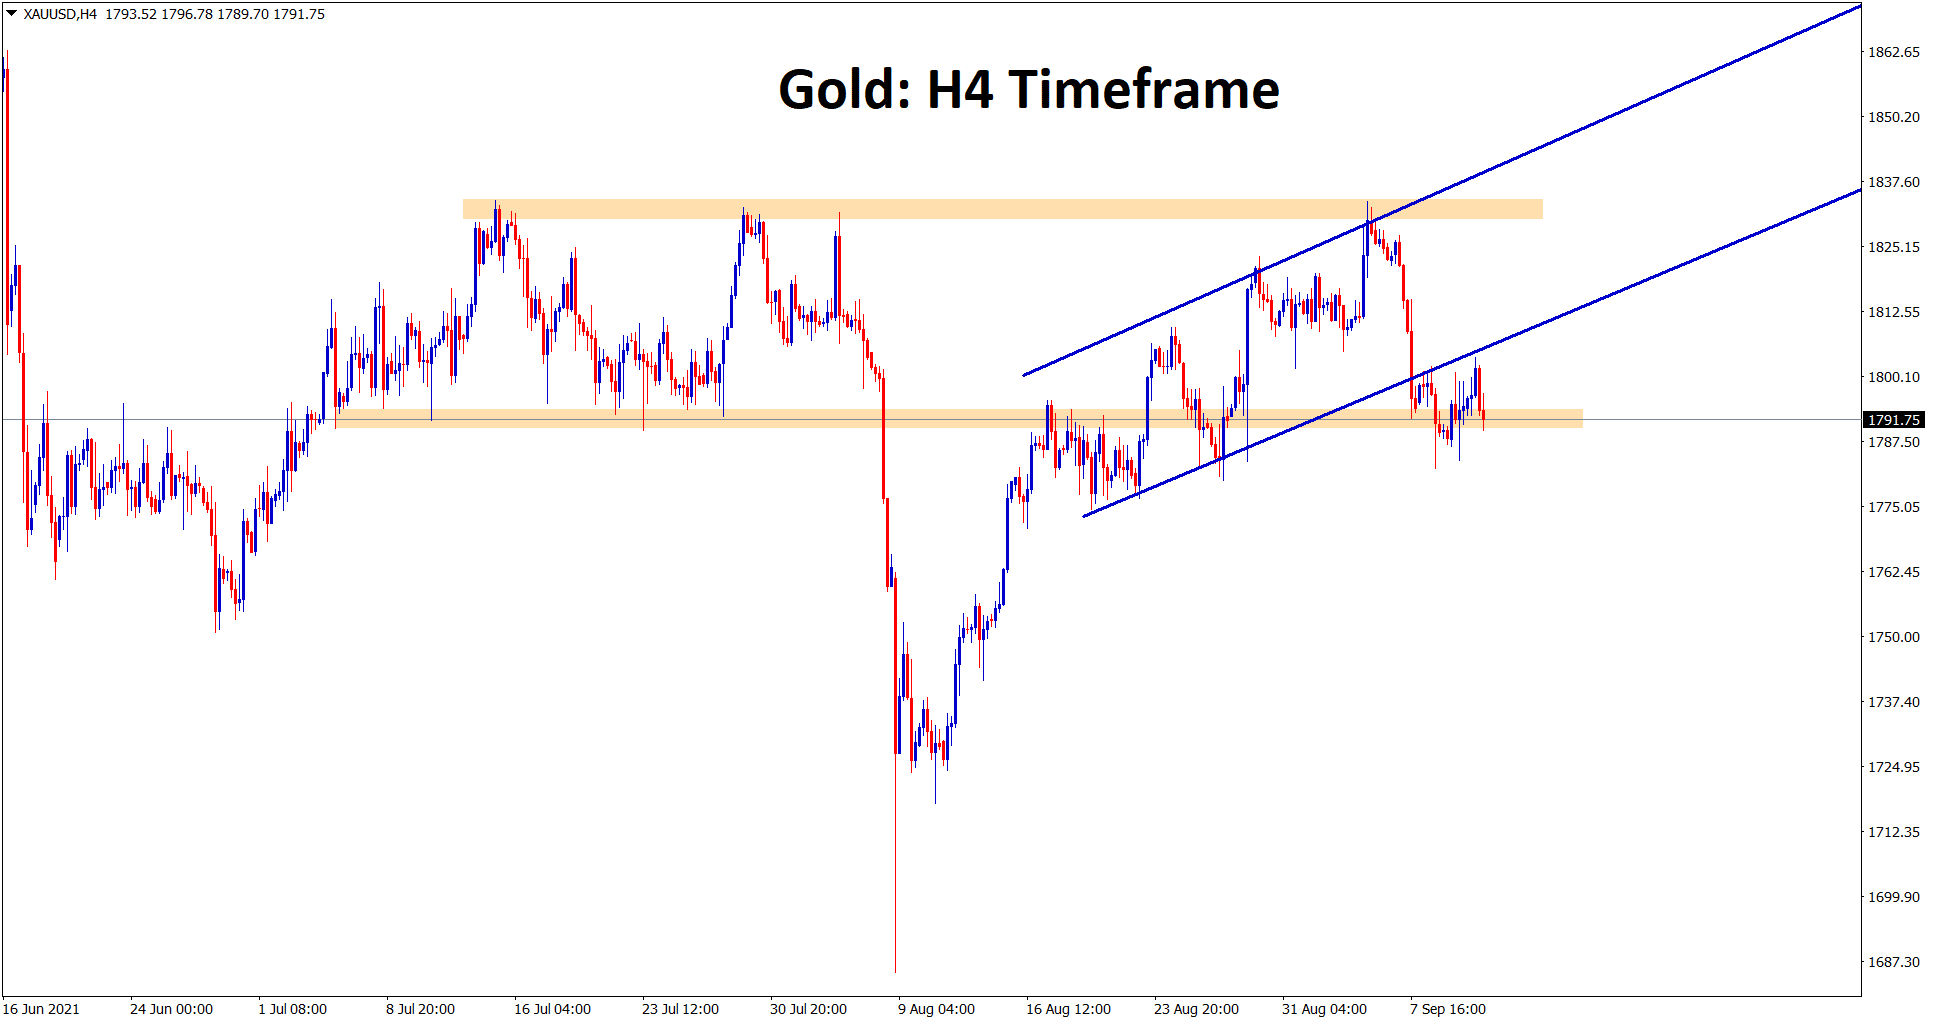 Gold is consolidating at the minor support area after breaking the ascending channel